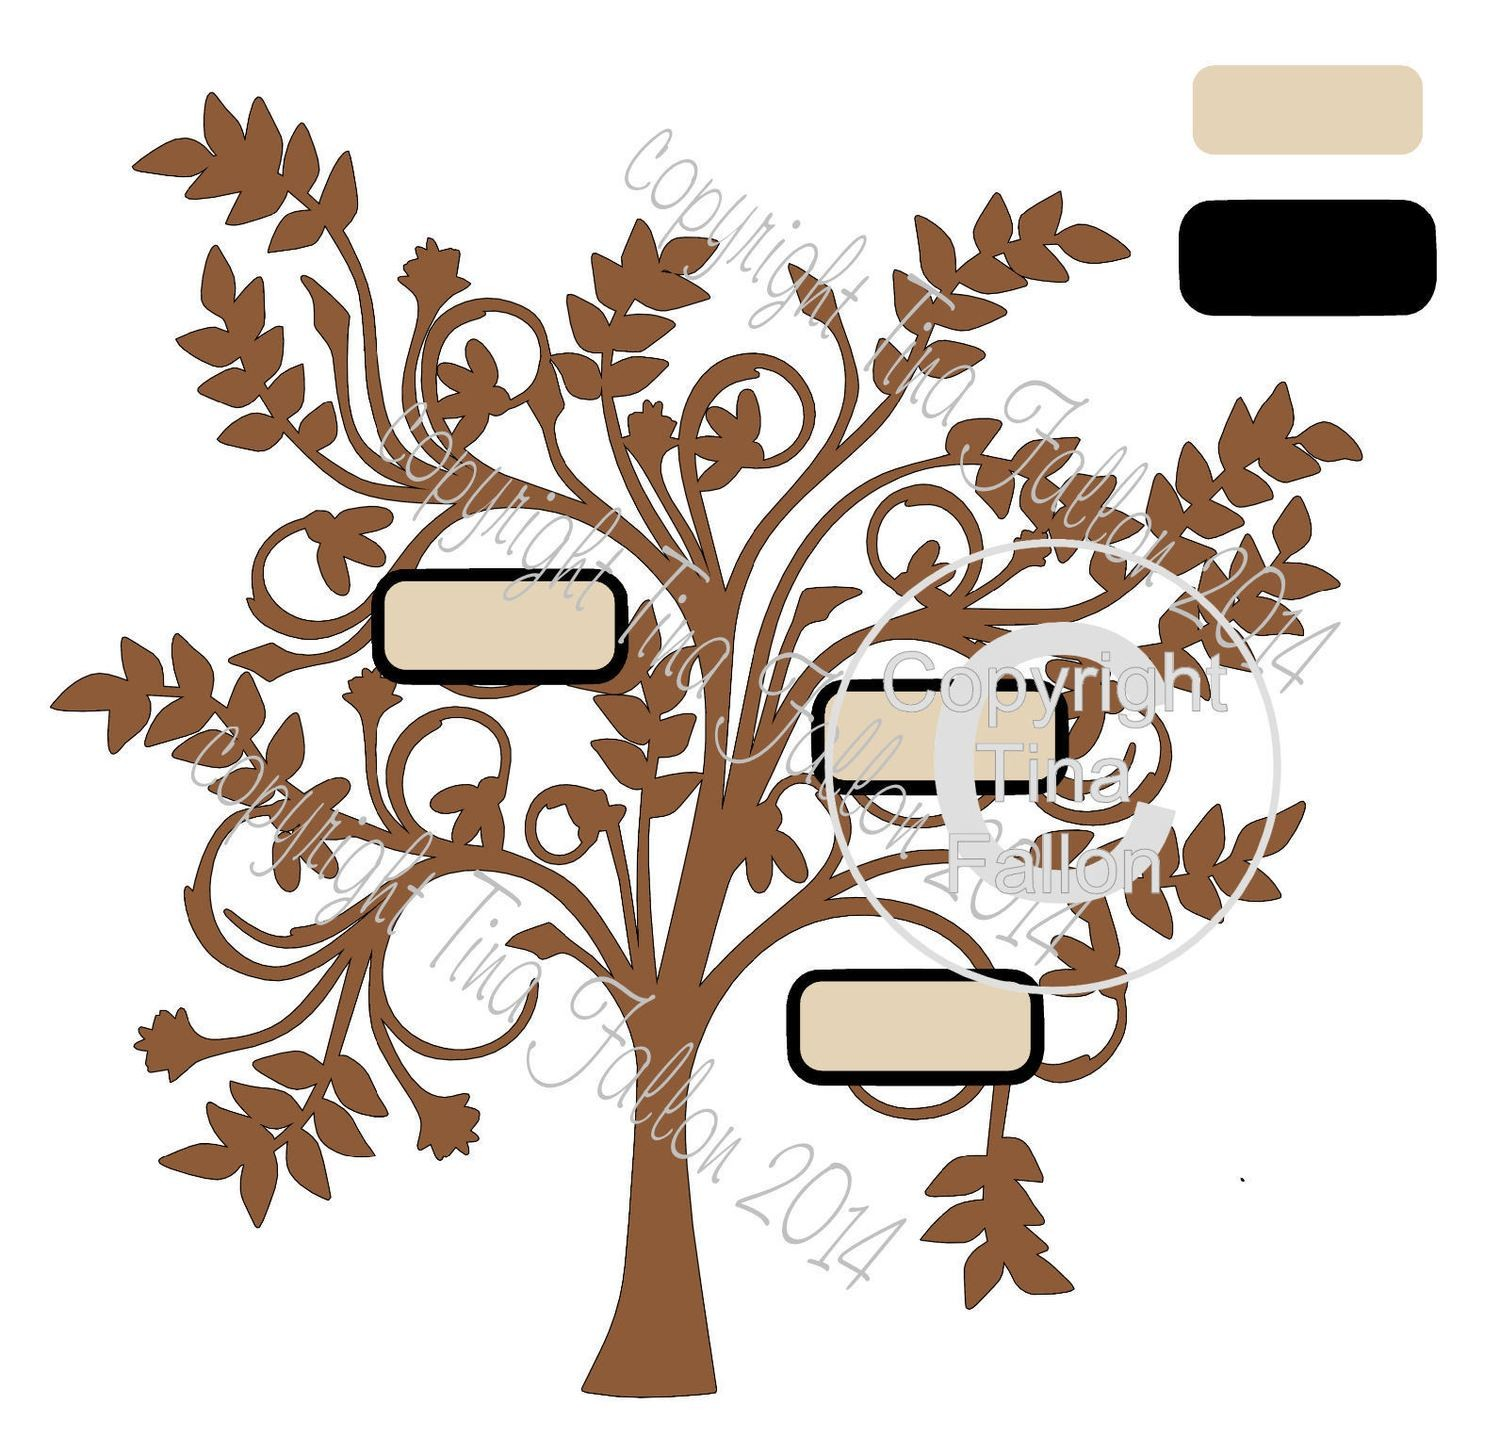 Family Tree for any number of names